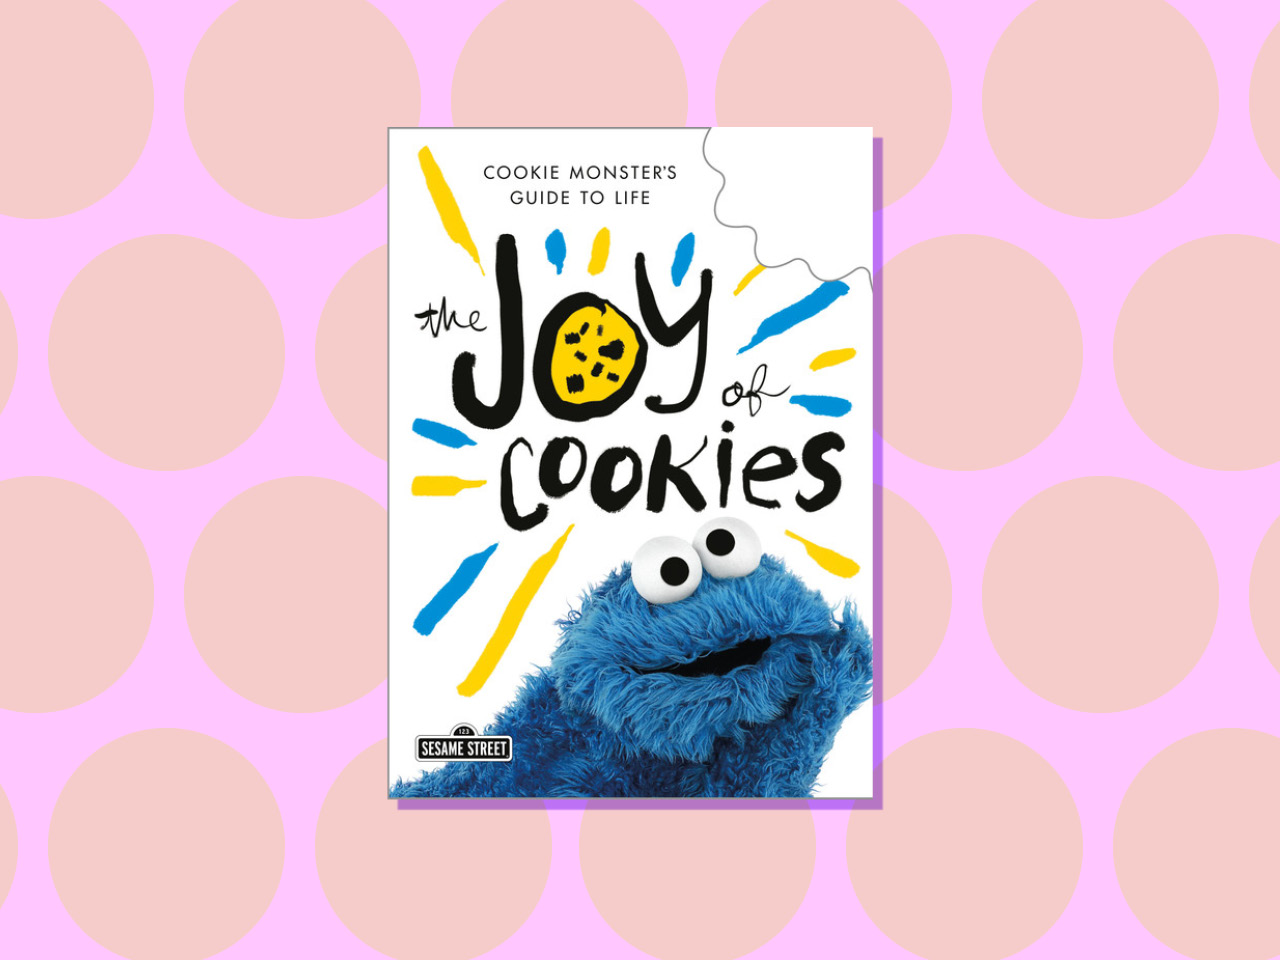 Cookie Monster Book on pink polka dot background